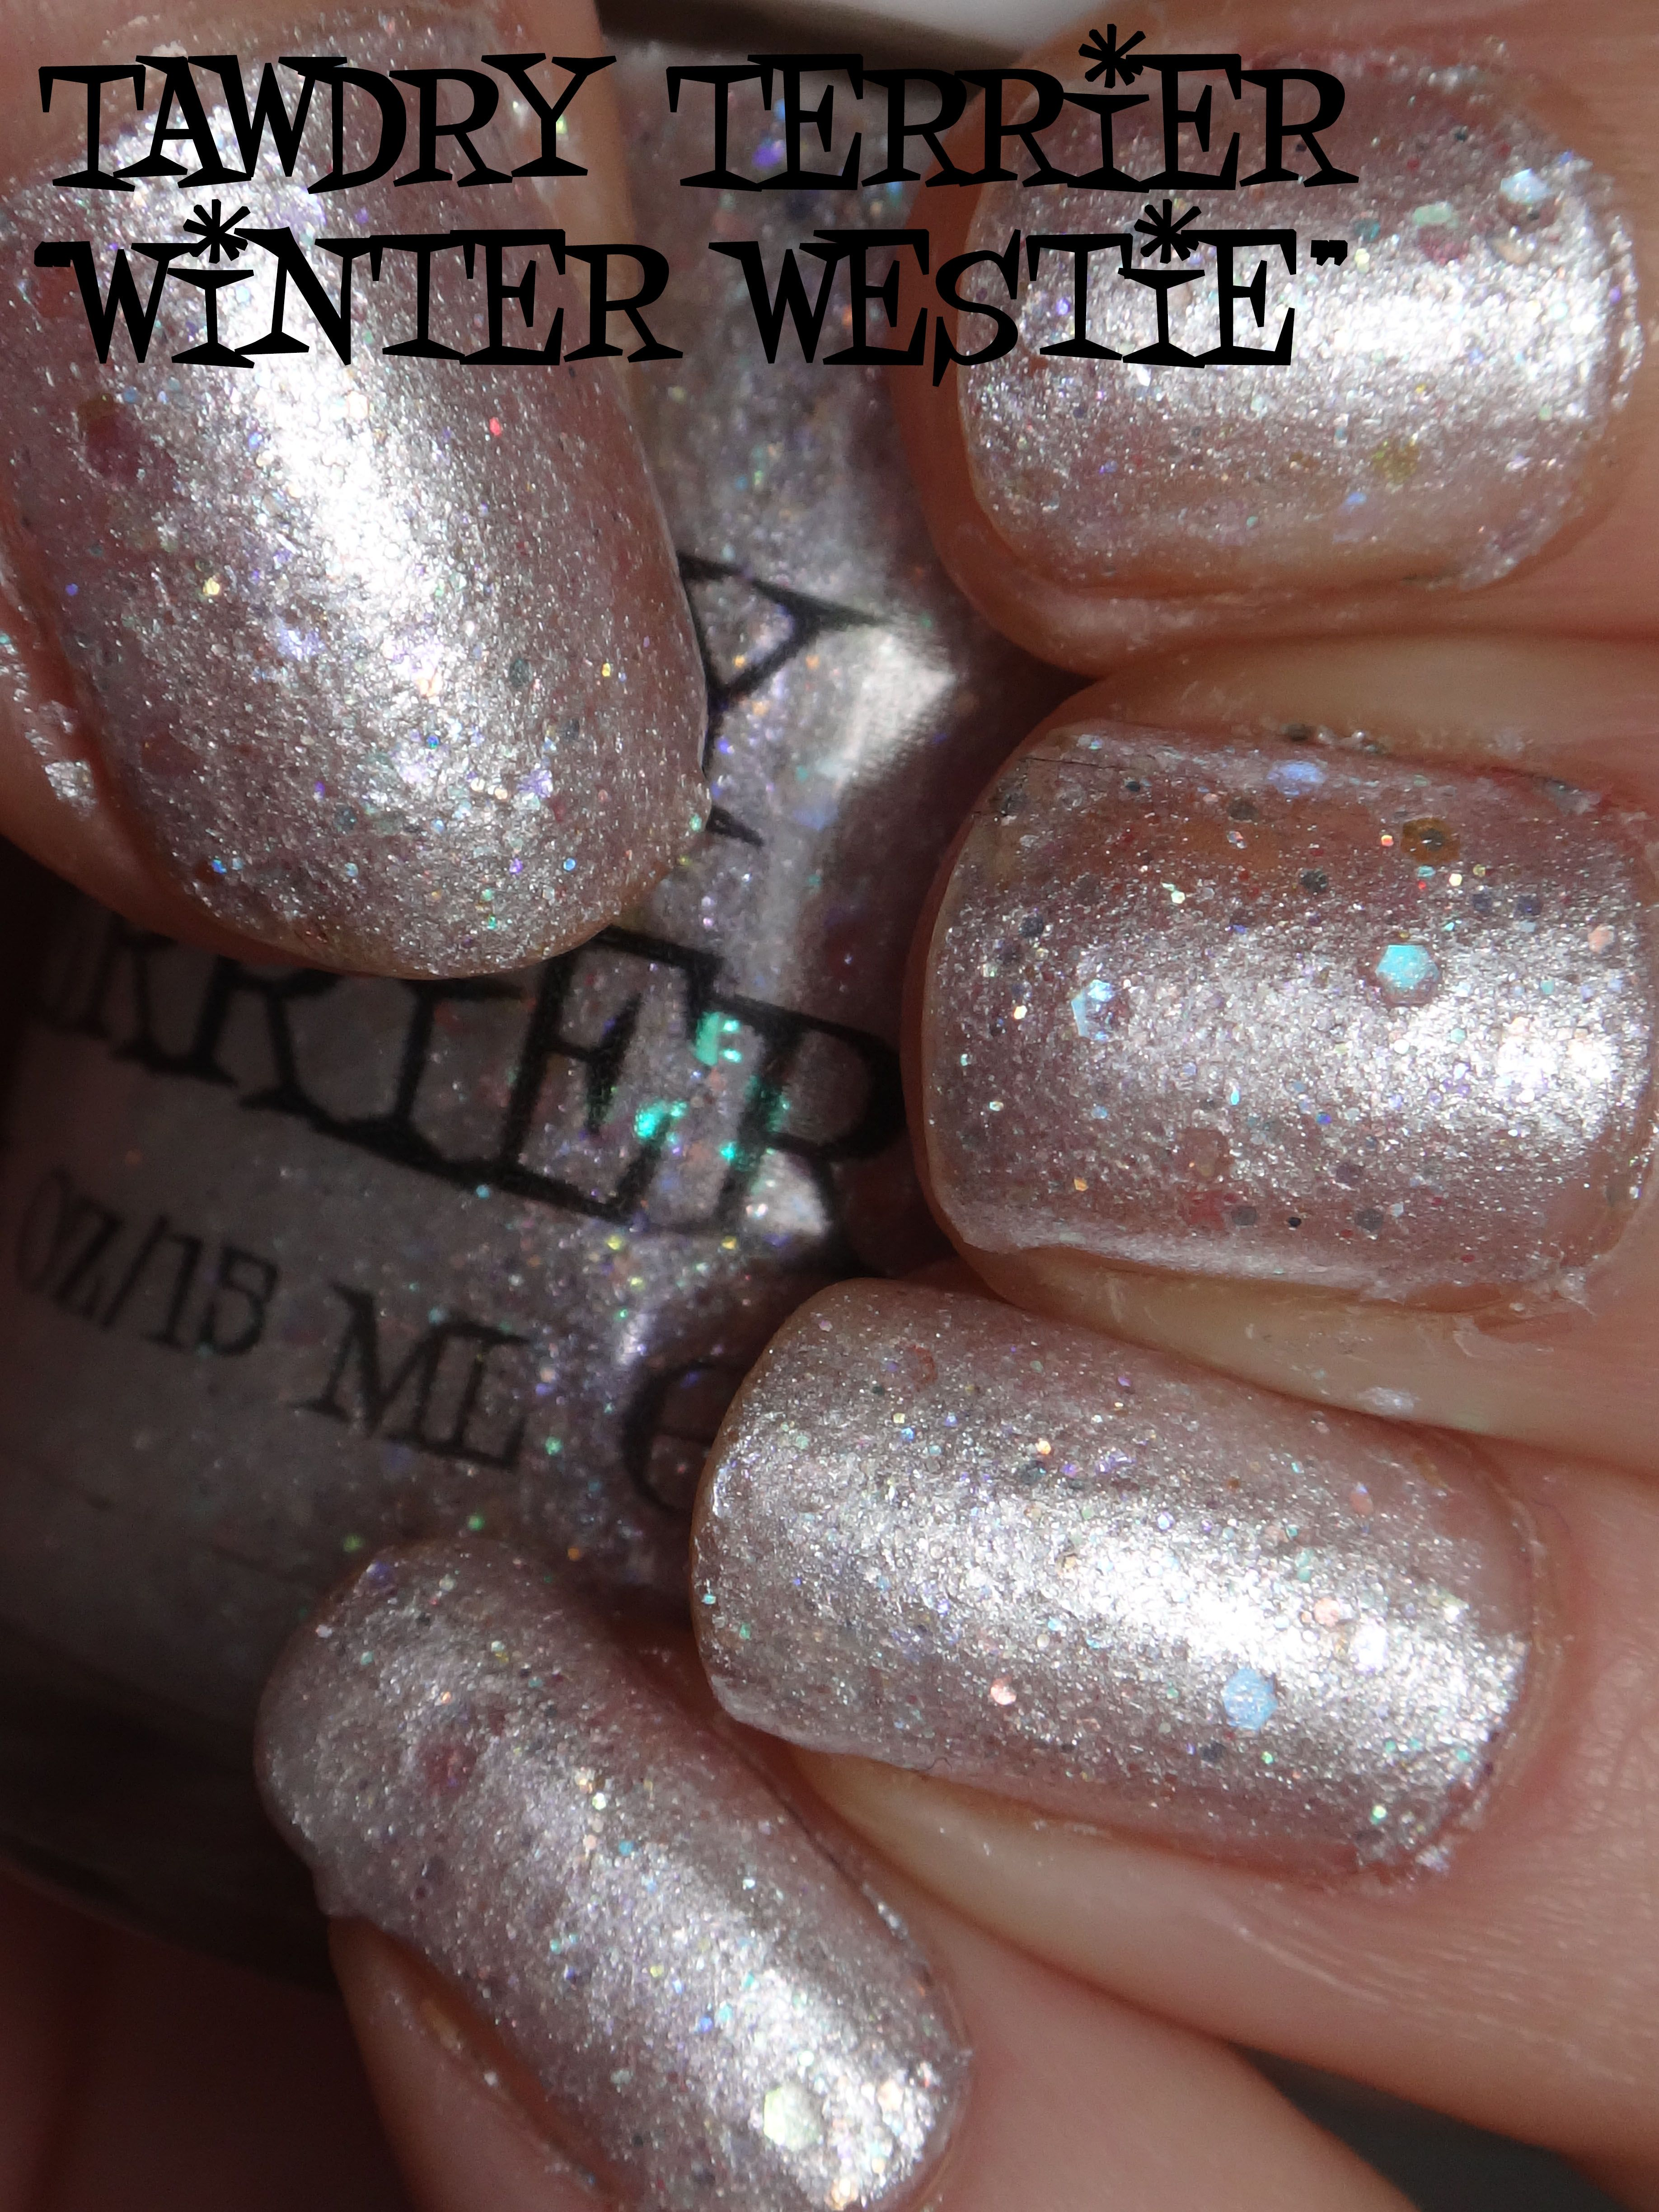 """@TawdryTerrier """"Winter Westie"""" (SOLD OUT) in the sun - check out our available polishes at https://www.etsy.com/shop/TawdryTerrier #nailpolish #indienailpolish #tawdryterrier"""